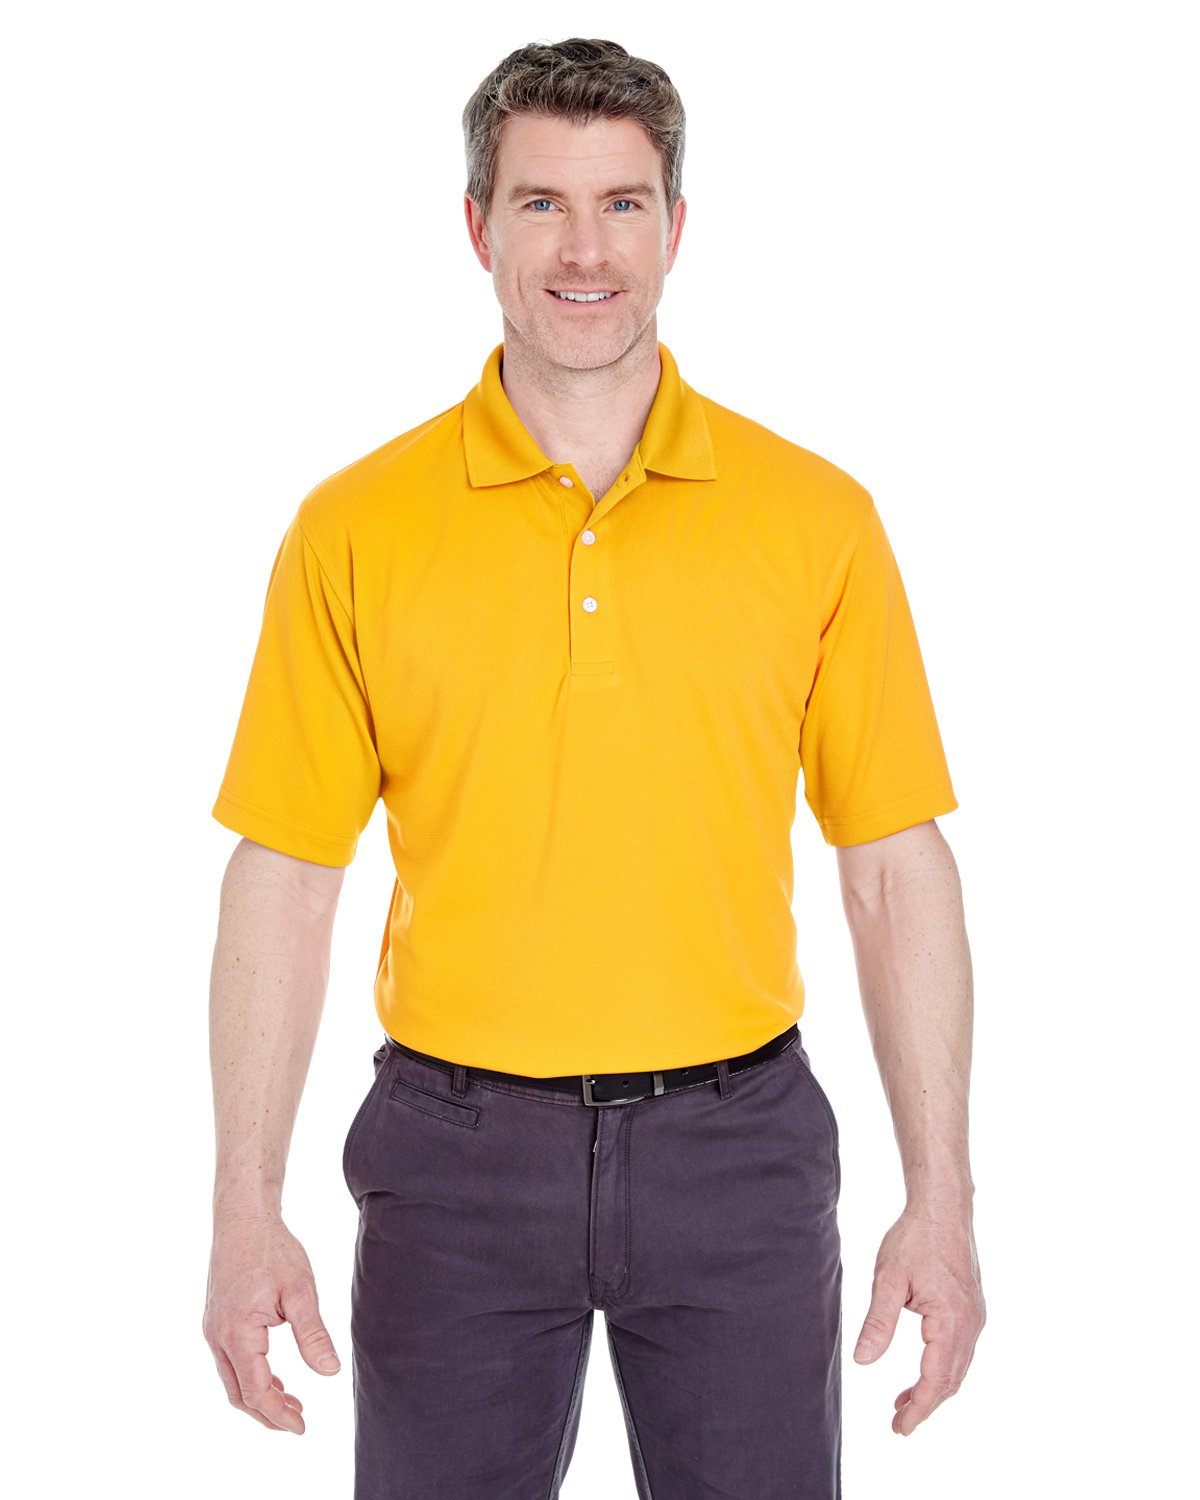 8445 UC MEN STAIN RELEASE PERF POLO GOLD 3XL UltraClub